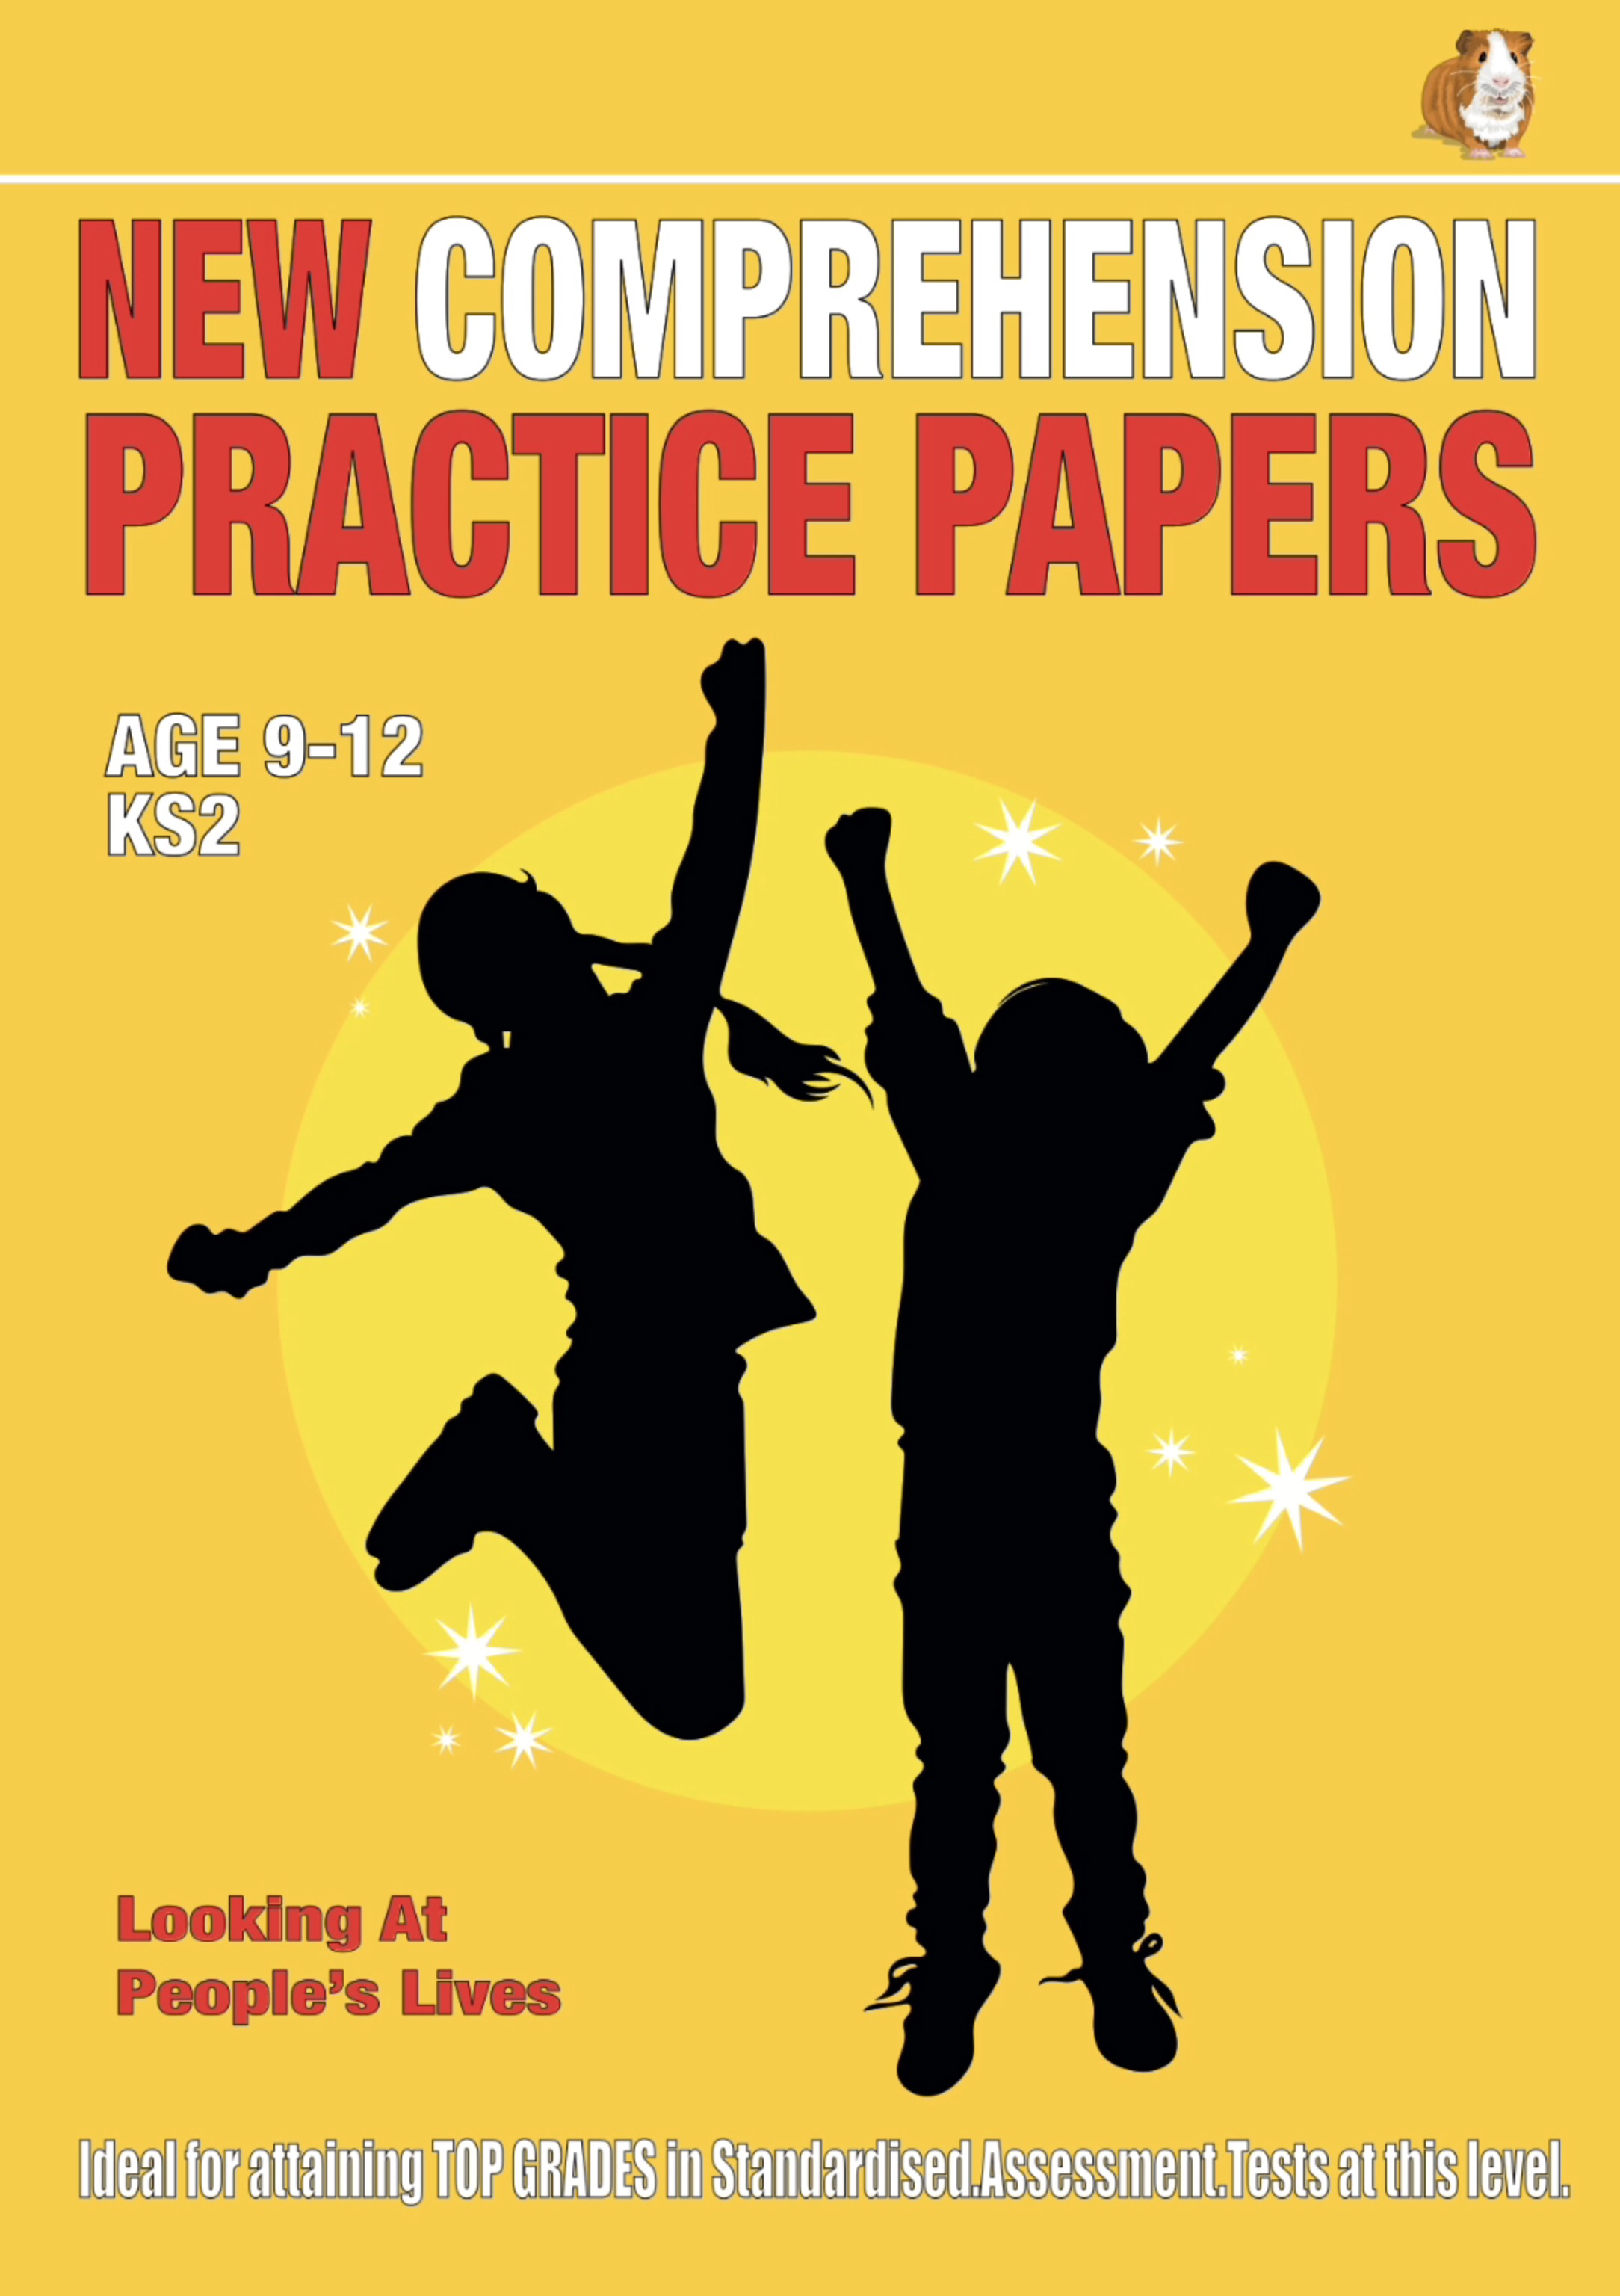 Comprehension Practice Papers (Bundle 3) 9-12 years